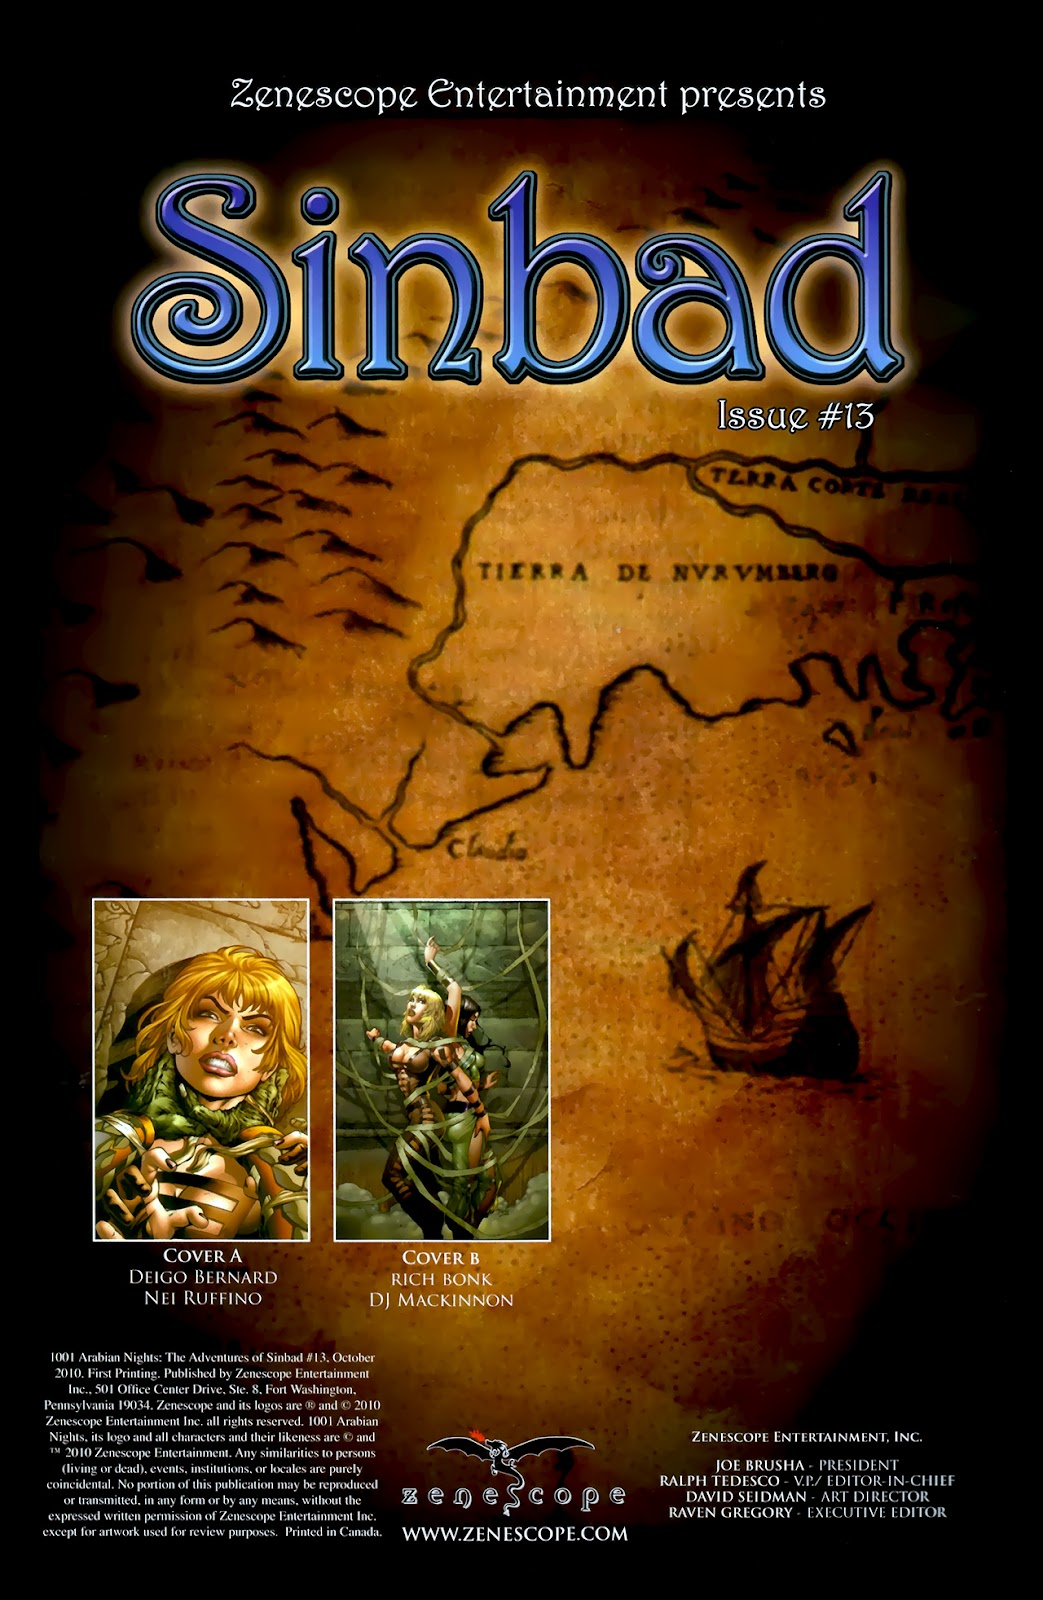 1001 Arabian Nights: The Adventures of Sinbad Issue #13 Page 2